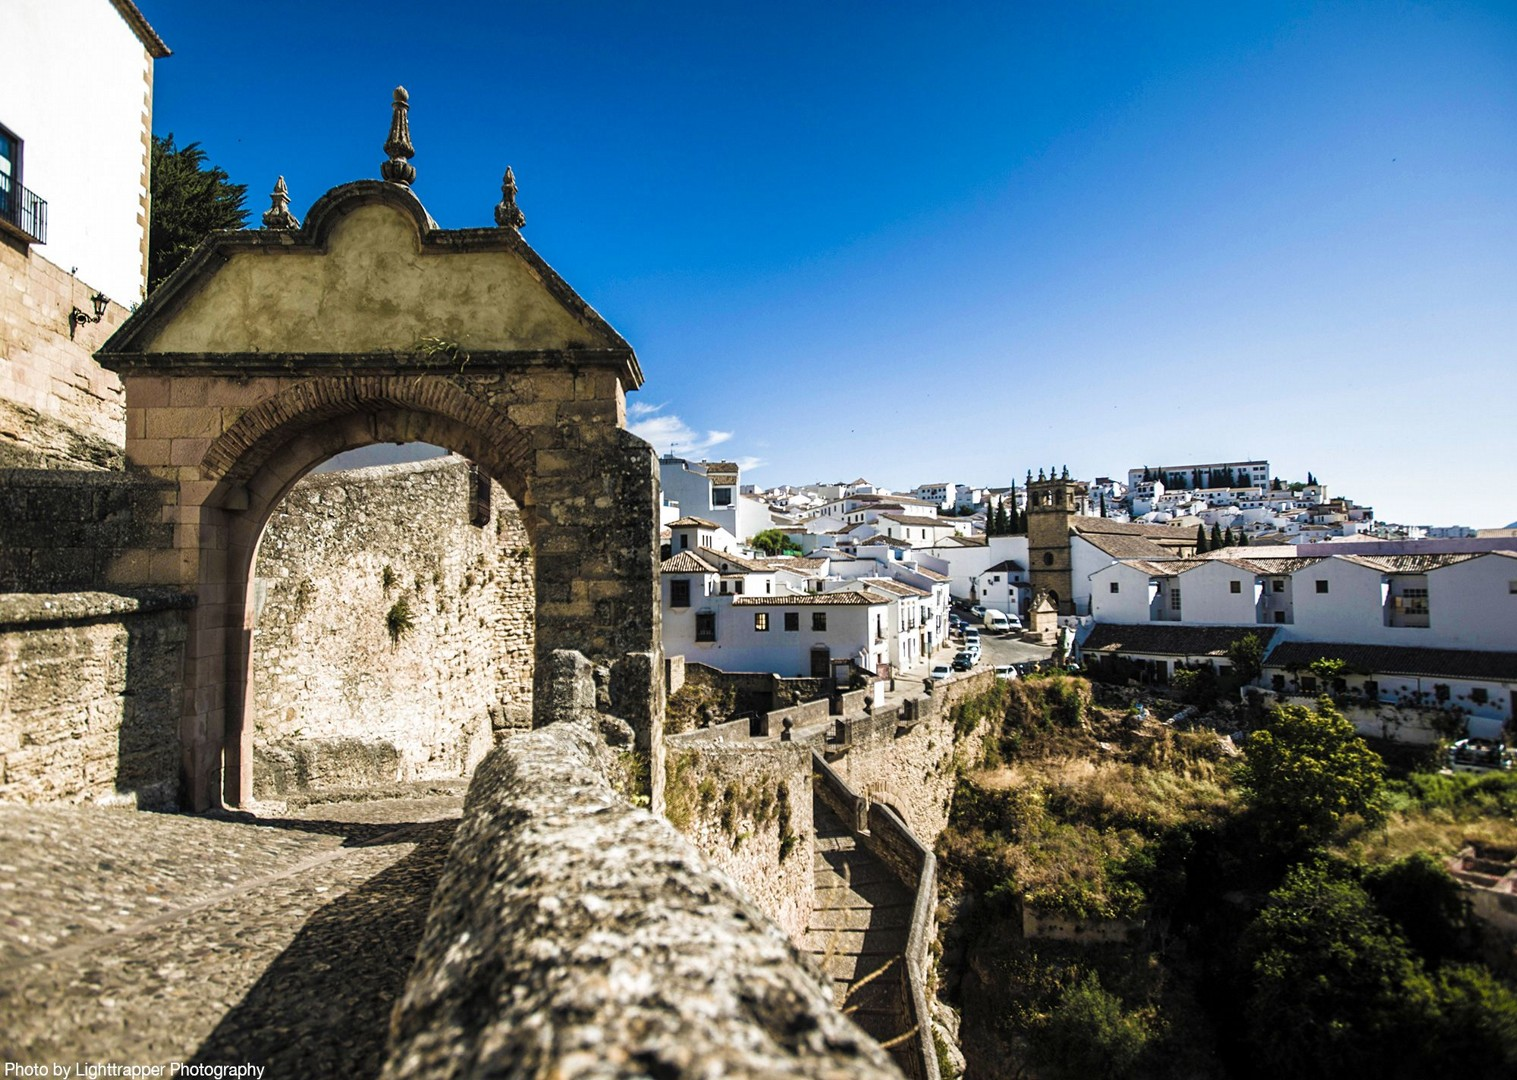 ronda-explore-by-bike-holiday-road-cycling-culture.jpg - Southern Spain - Roads of Ronda - Guided Road Cycling Holiday - Road Cycling